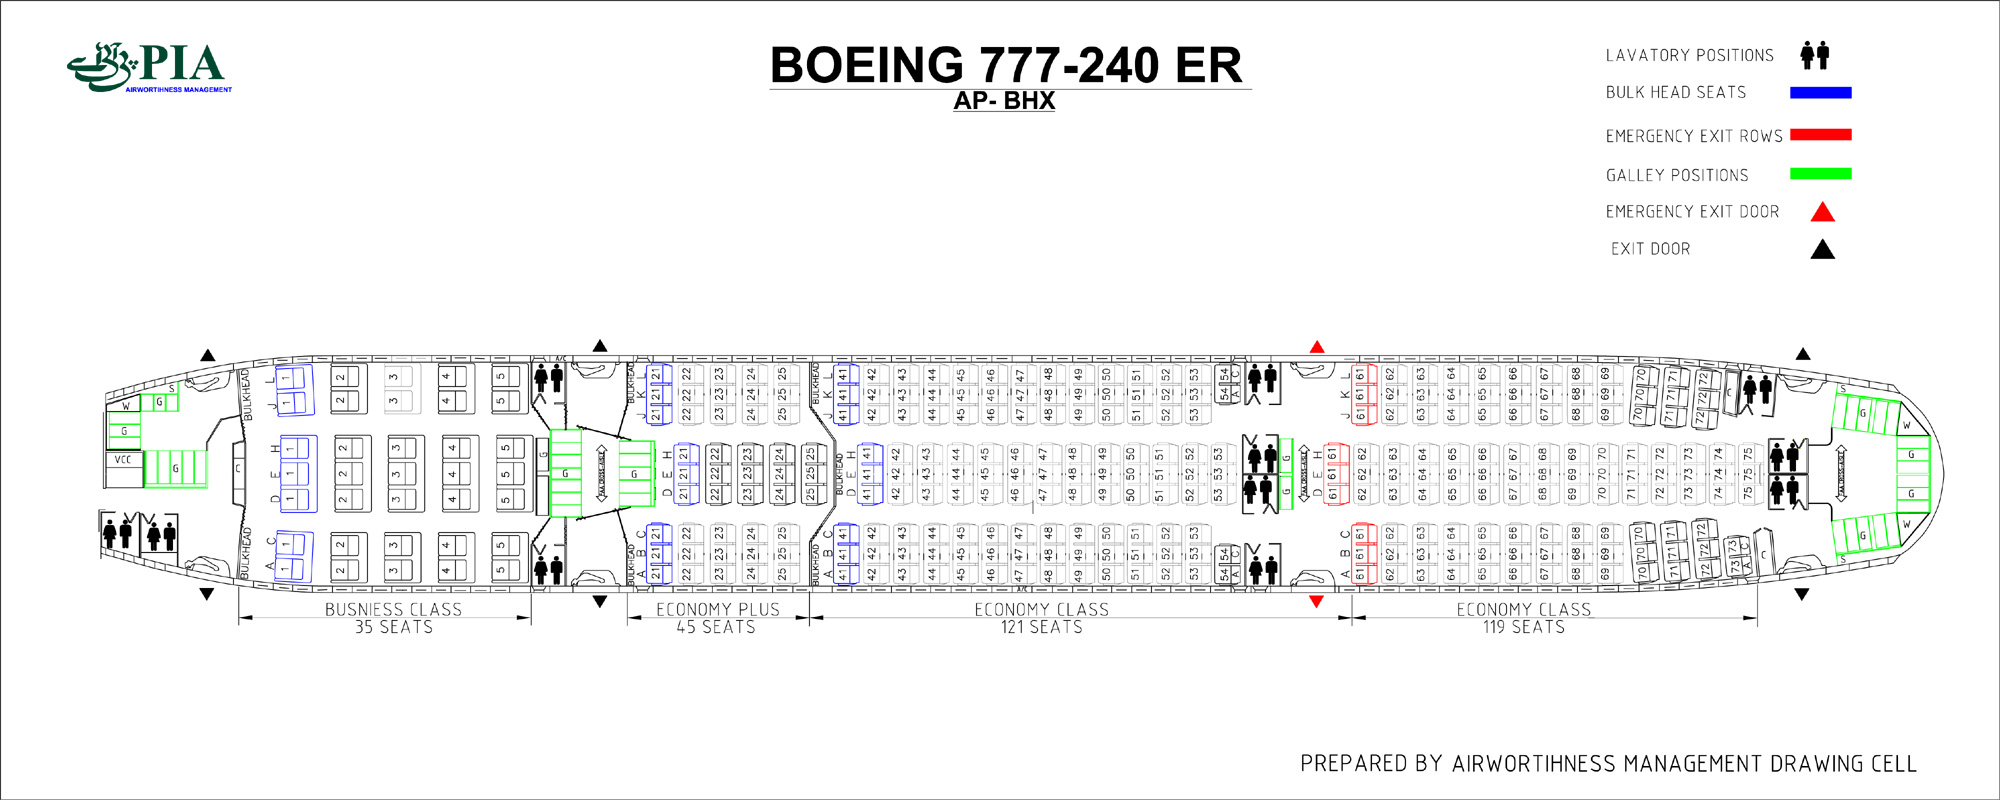 Cathay Pacific 77w Aircraft Seating Plan Femous Aircraft